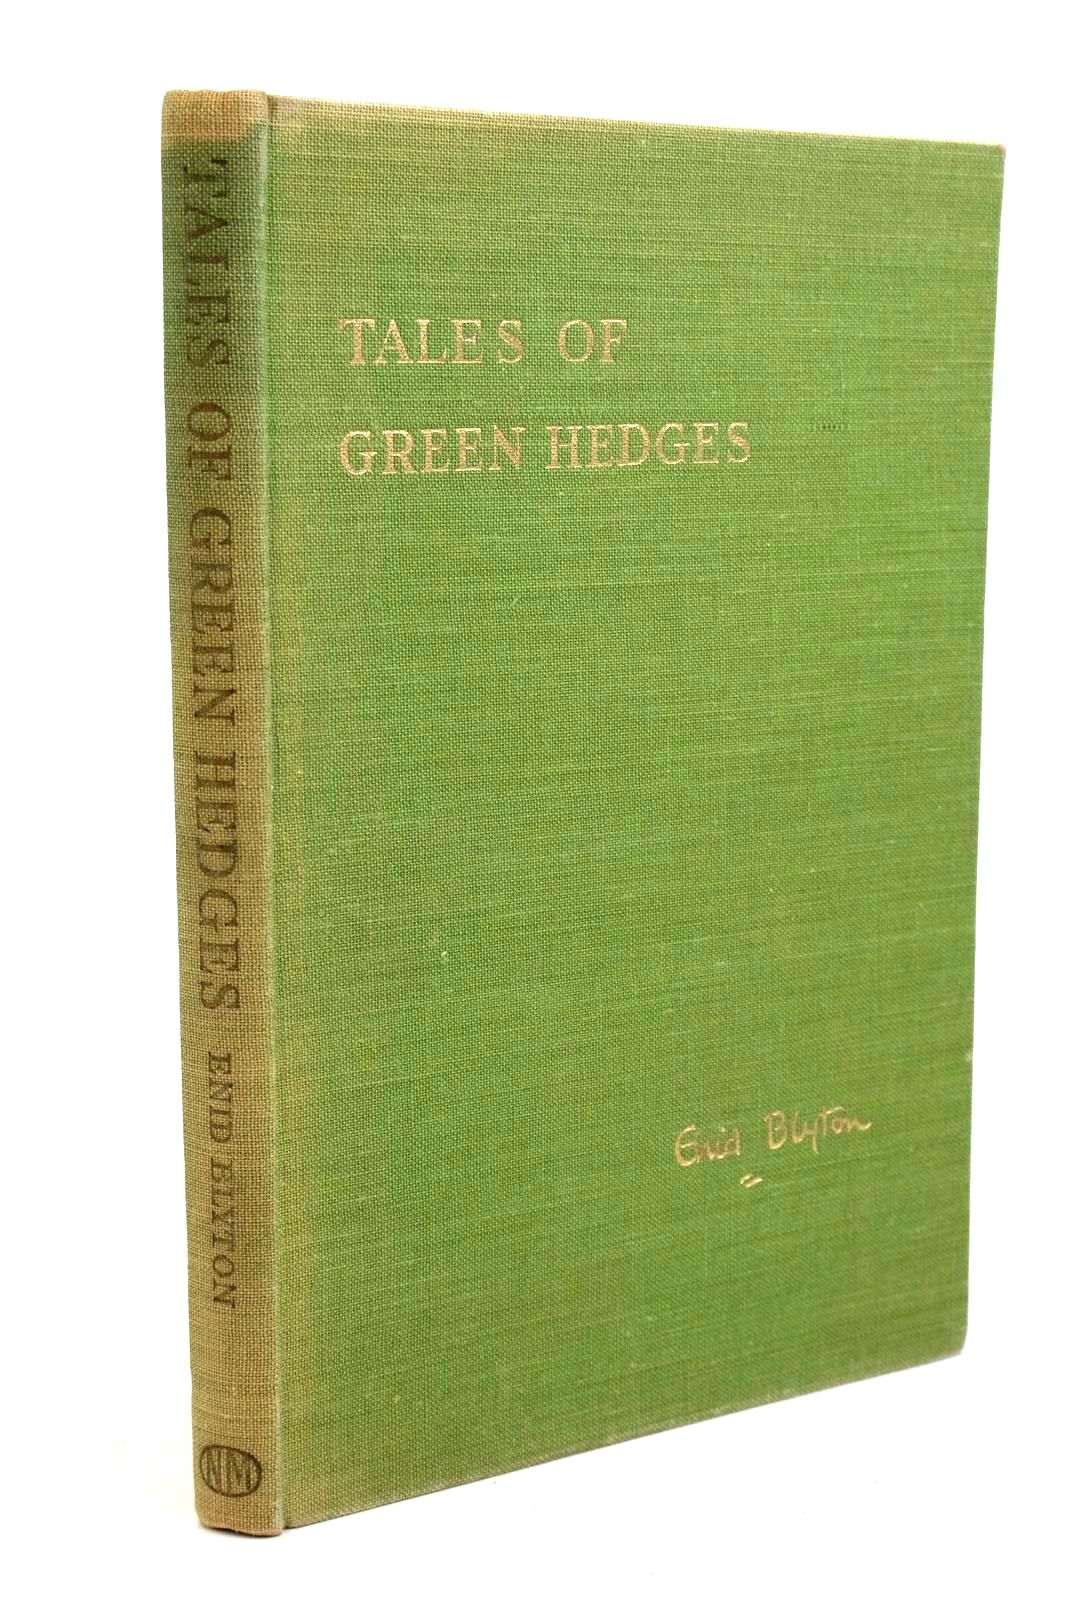 Photo of TALES OF GREEN HEDGES- Stock Number: 1321811